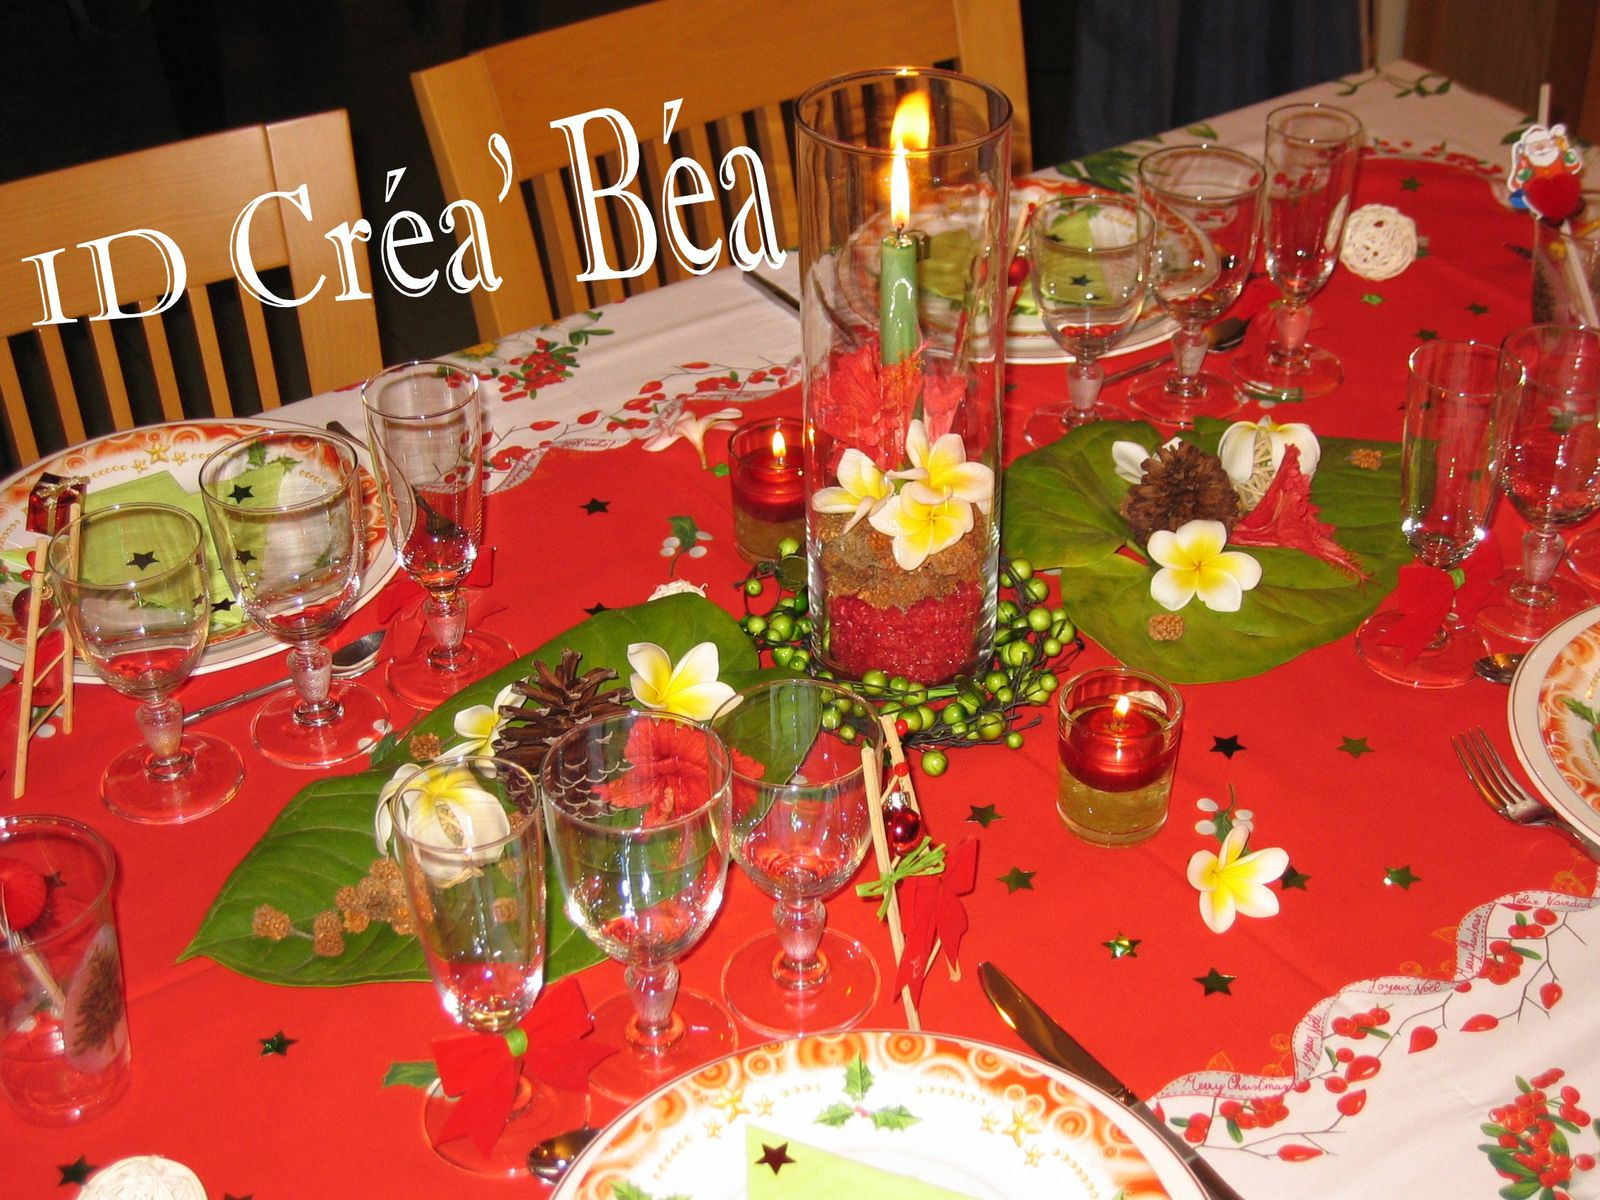 Decoration table de noel vert et rouge - Deco table noel rouge et or ...